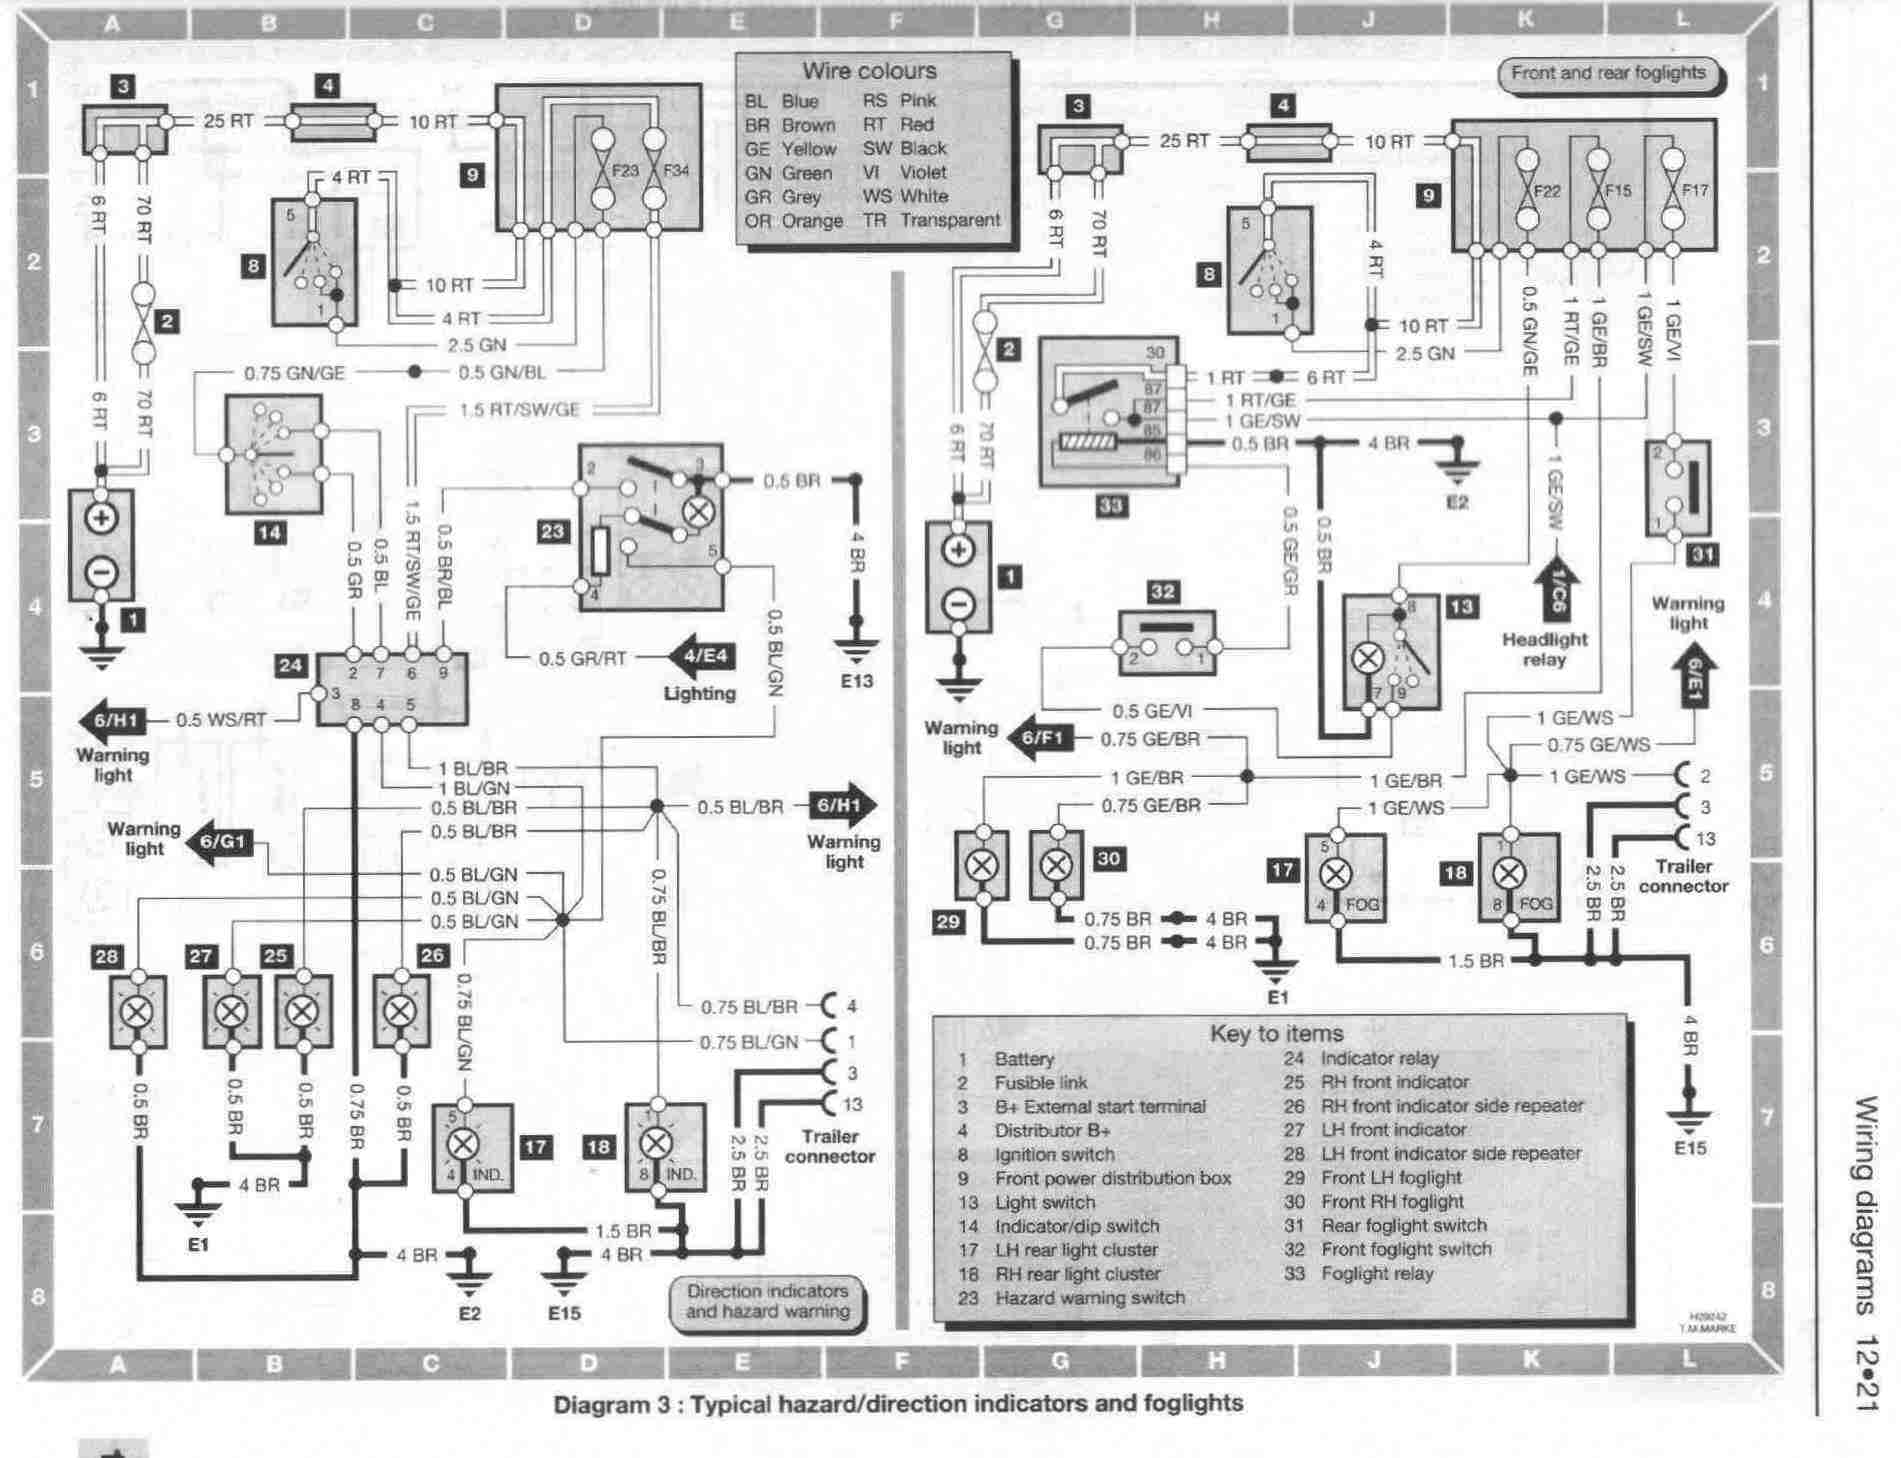 Wiring Diagram For International 656 The Wiring Diagram – International Wiring Diagram For 2001